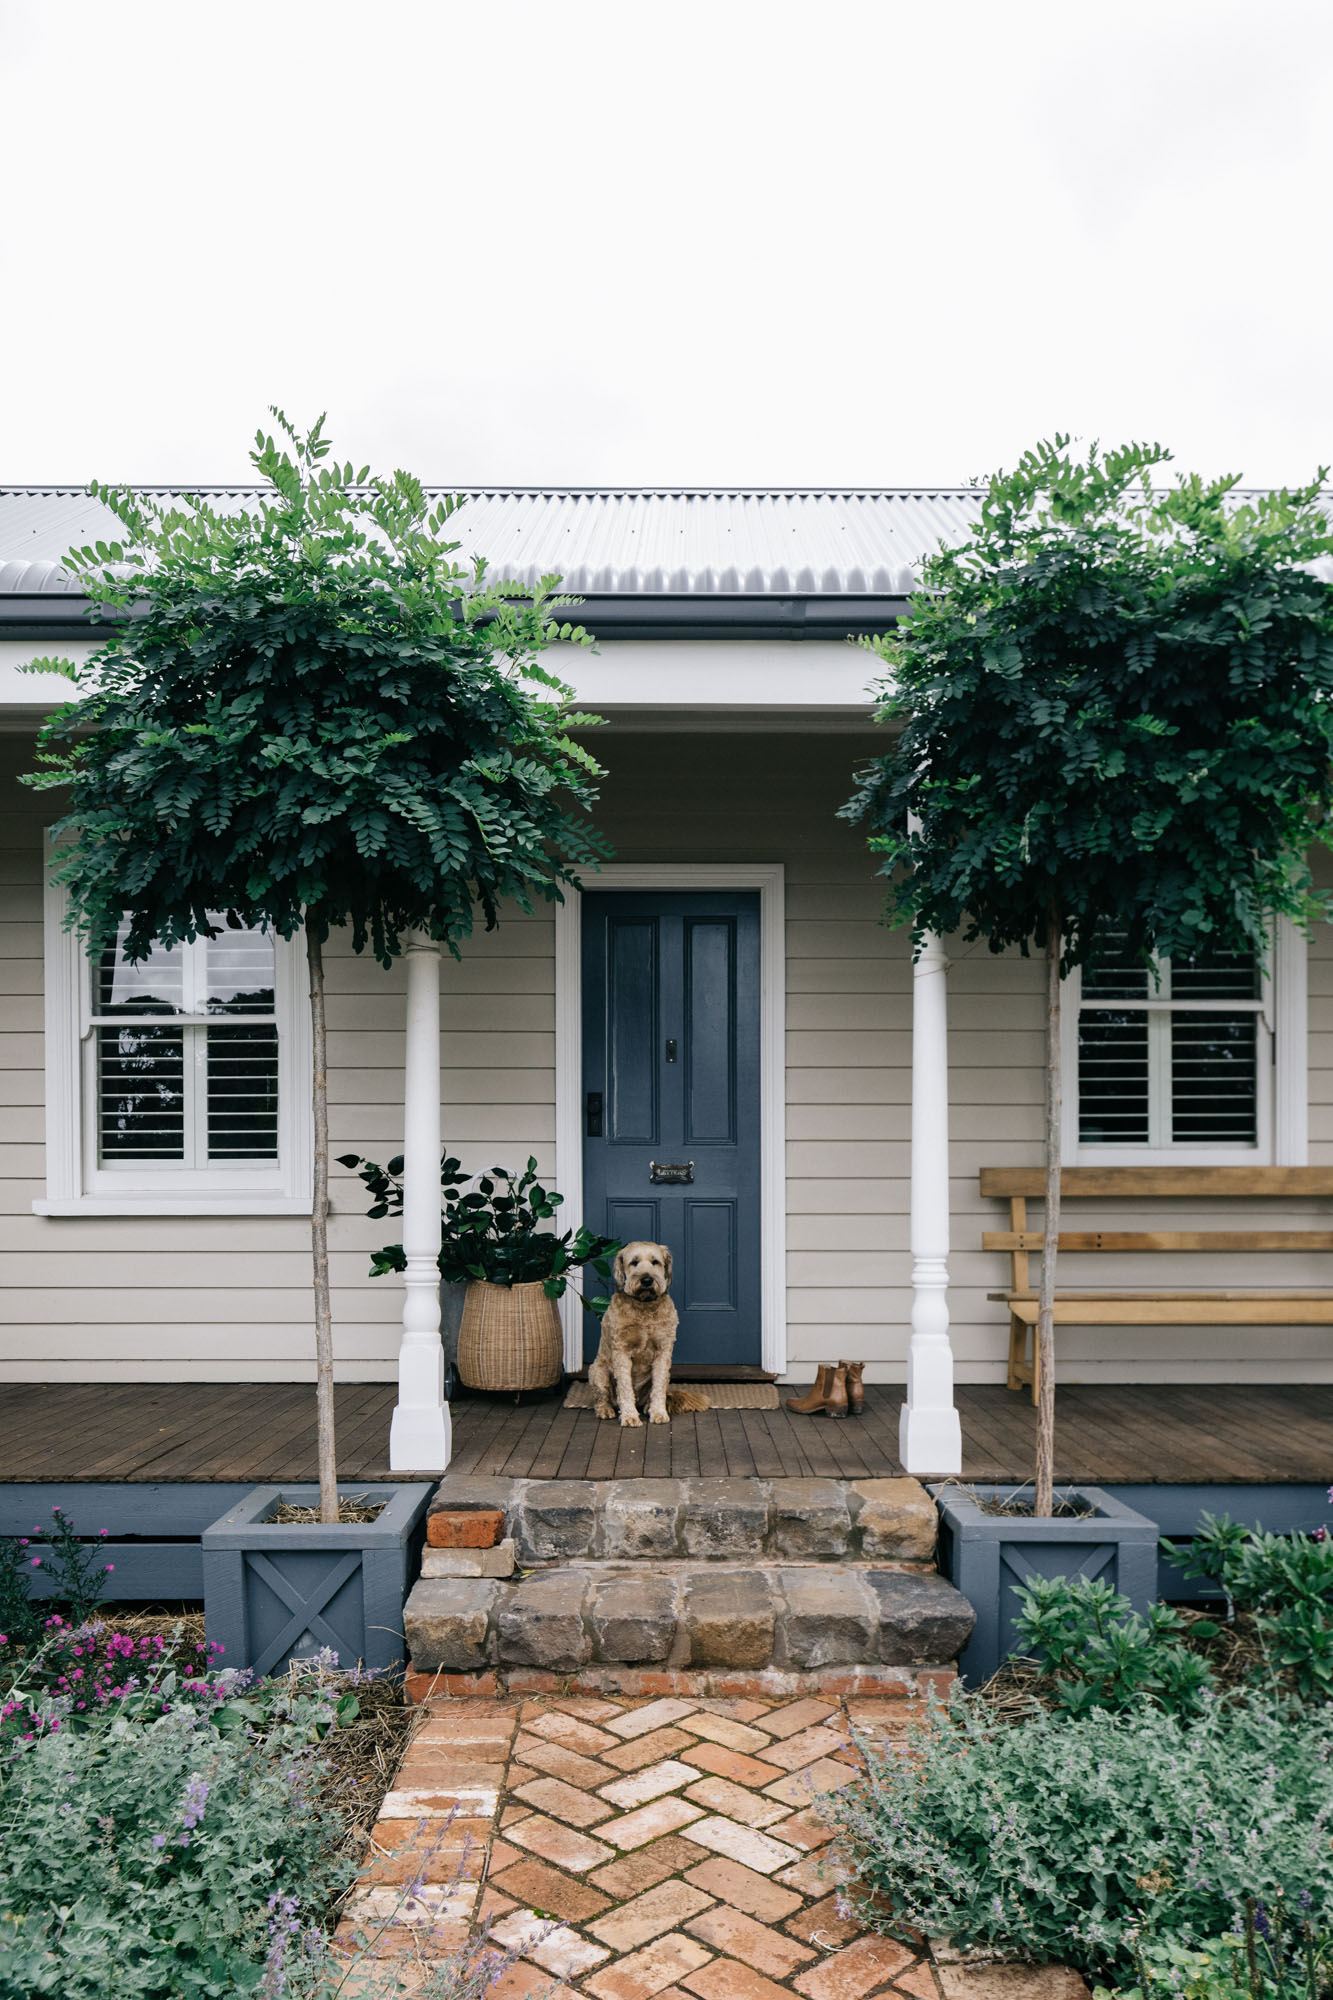 Country weatherboard cottage at Acre of Roses, Trentham - a sustainable flower farm and luxury country accommodation. Photography by Marnie Hawson, Melbourne purpose-driven photographer and styled by Belle Hemming.